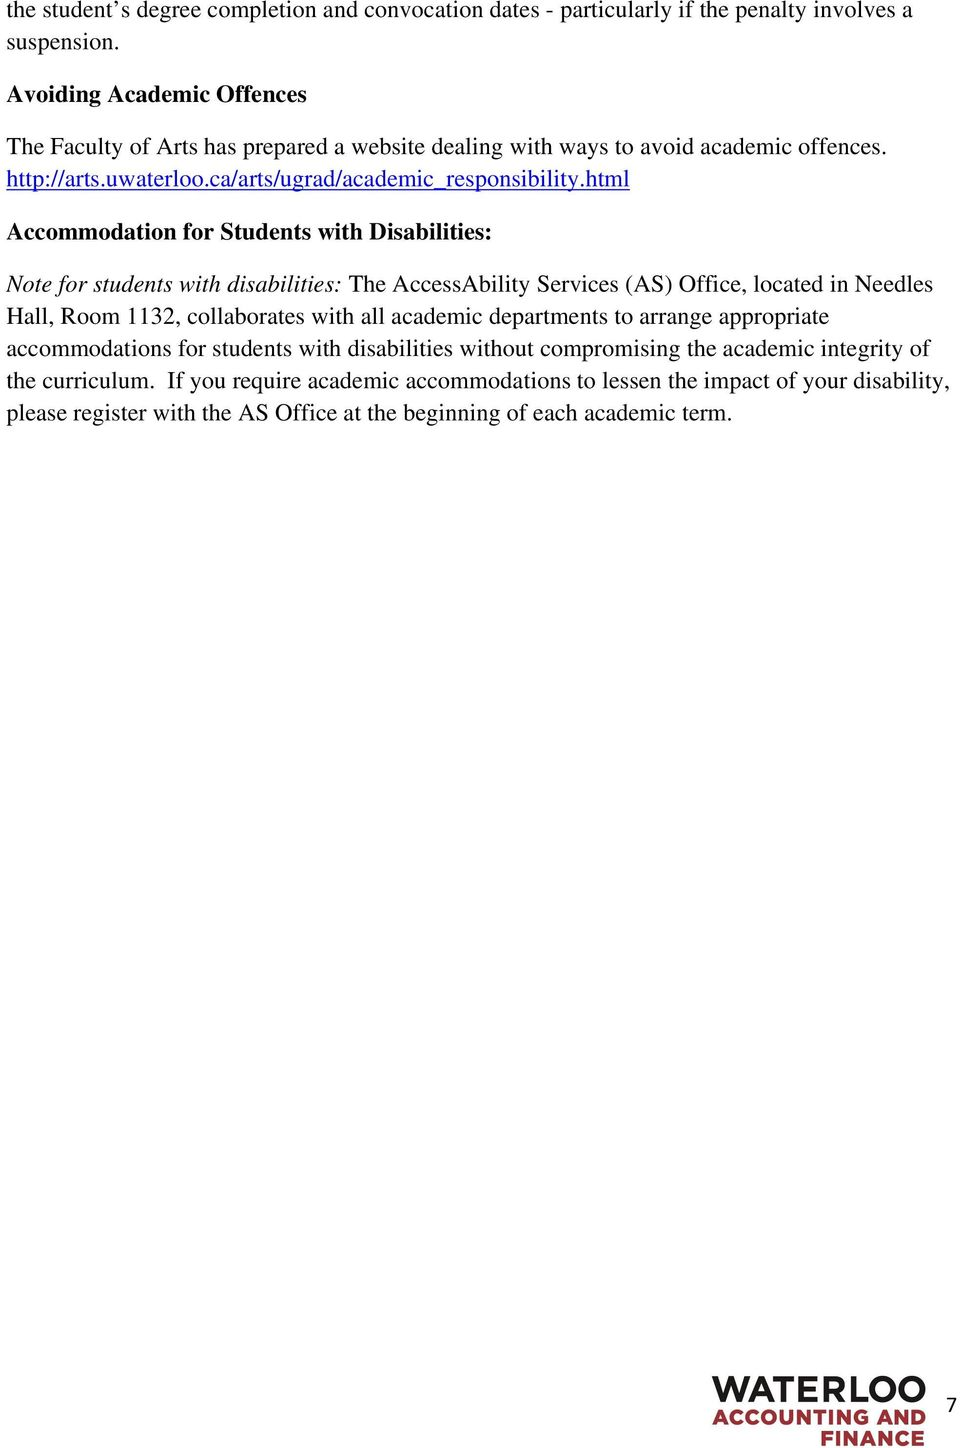 html Accommodation for Students with Disabilities: Note for students with disabilities: The AccessAbility Services (AS) Office, located in Needles Hall, Room 1132, collaborates with all academic